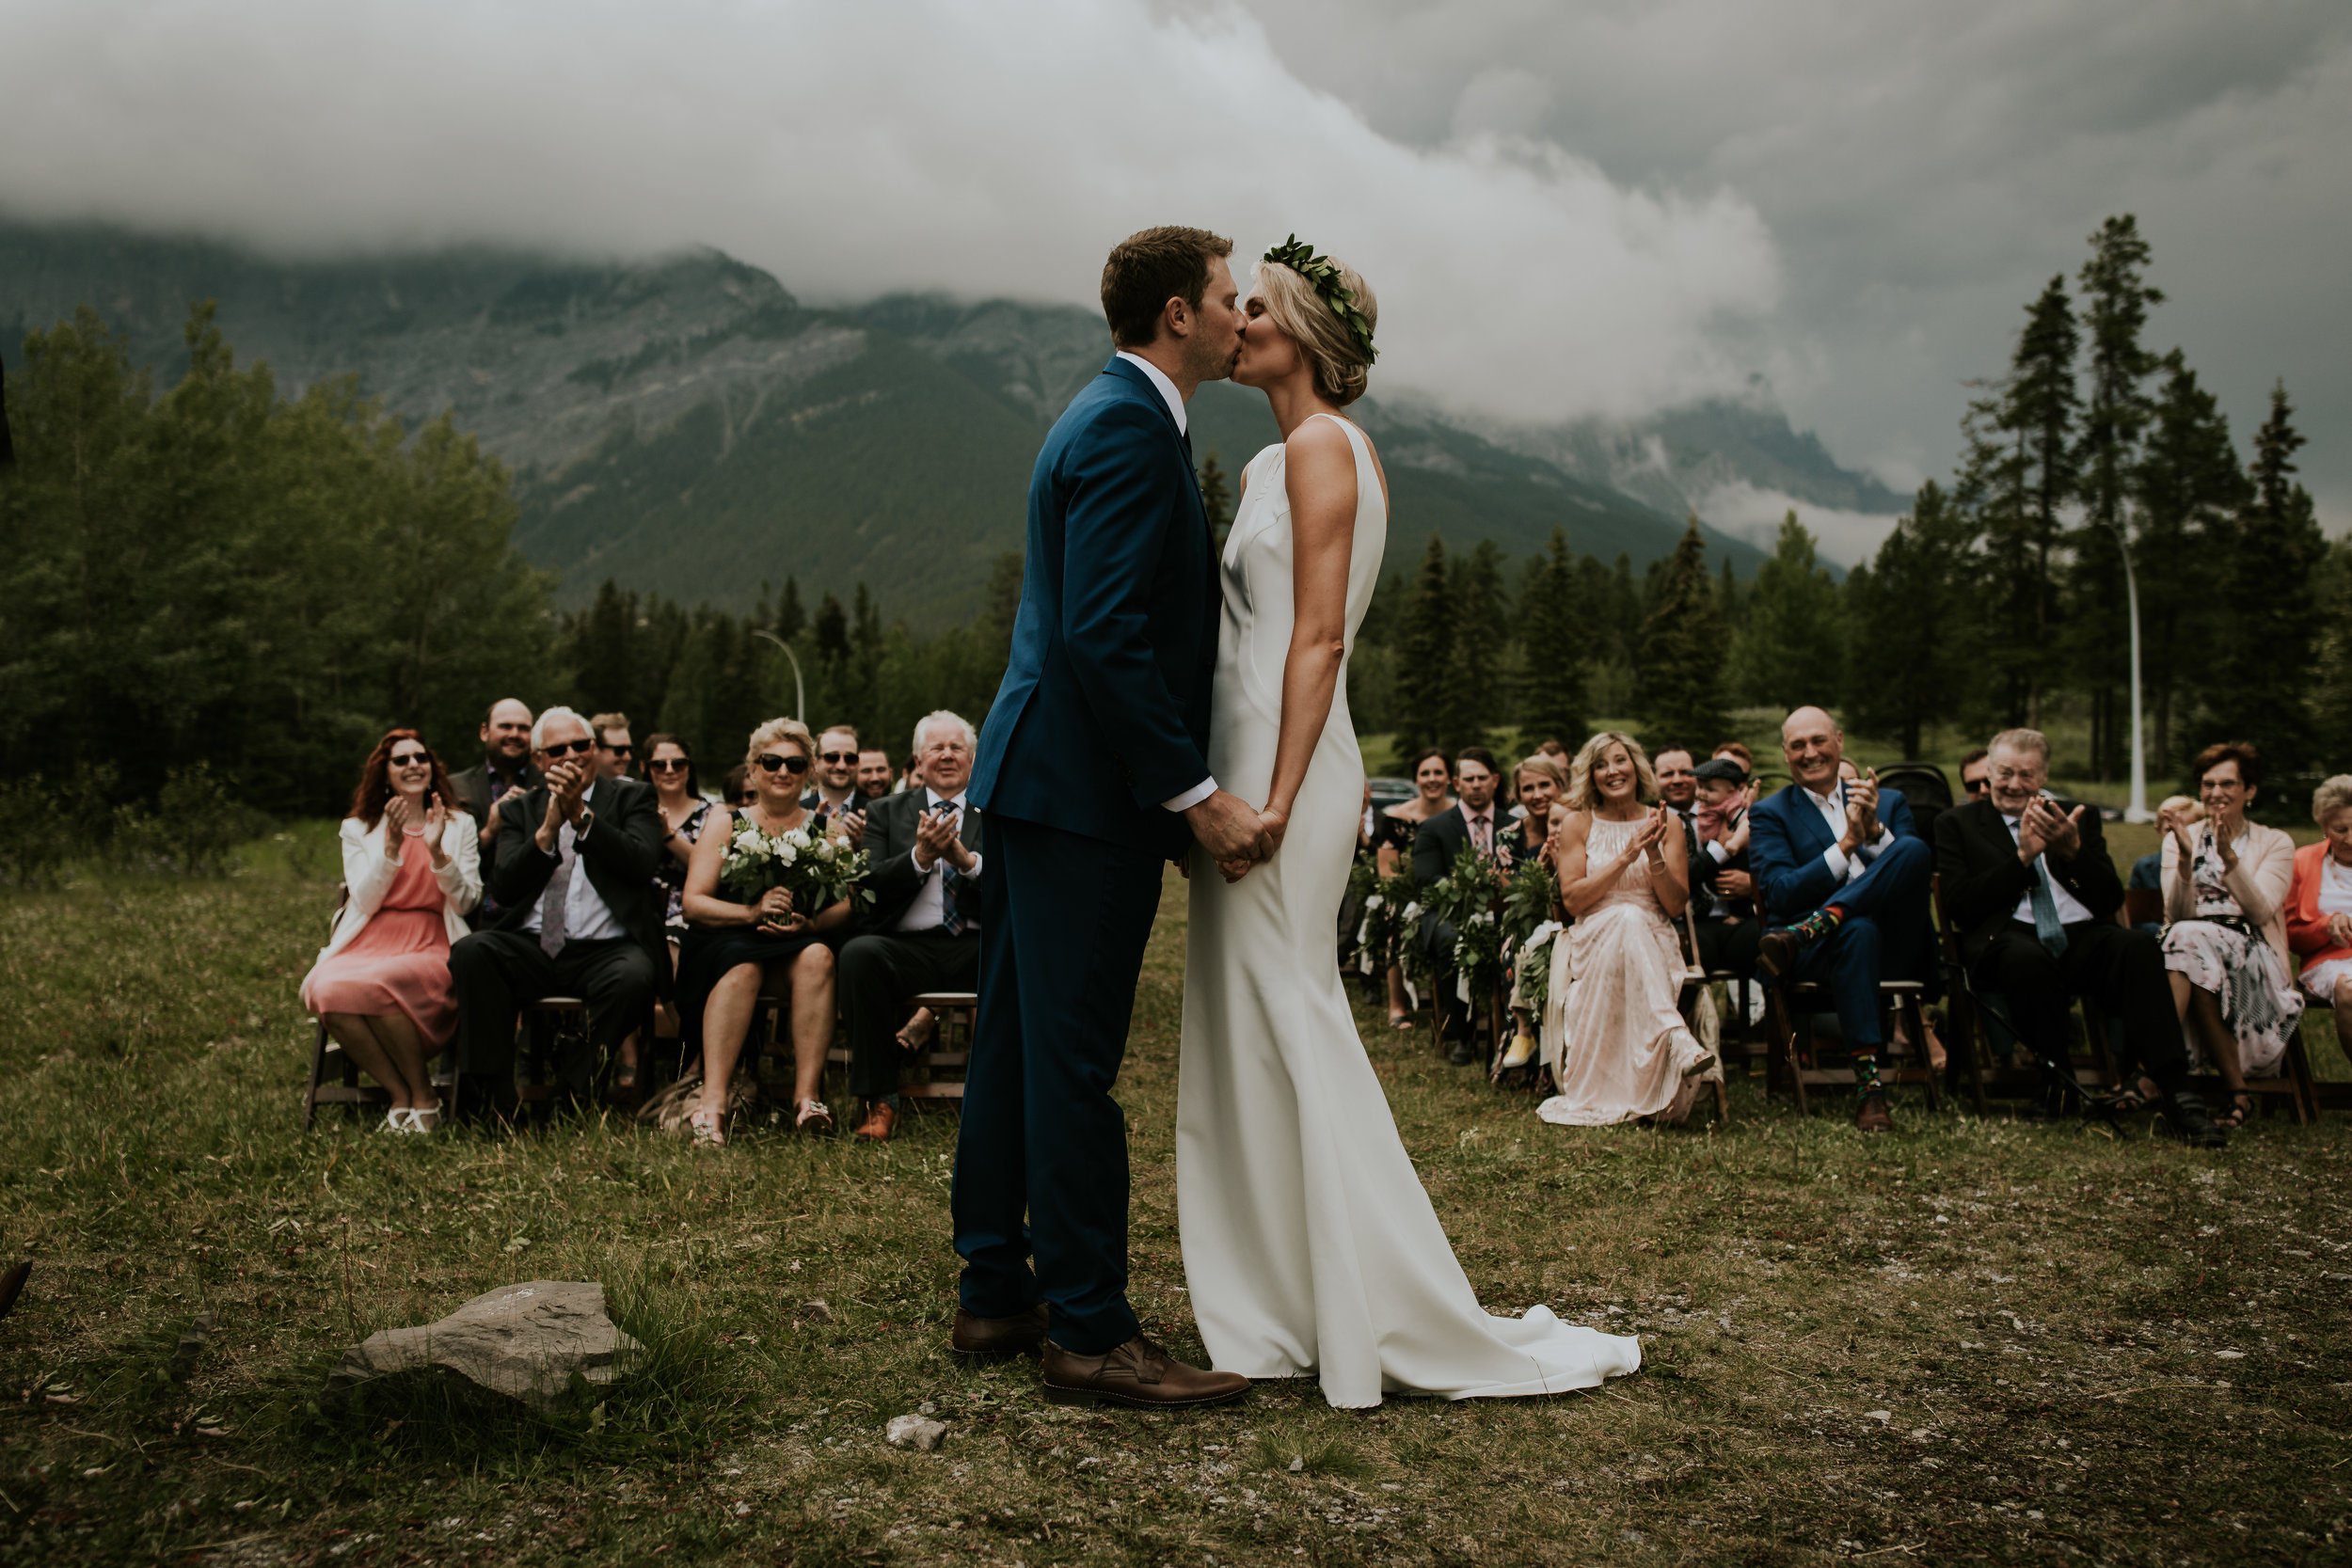 Intimate Canmore wedding at Rundleview Parkette near Banff Alberta